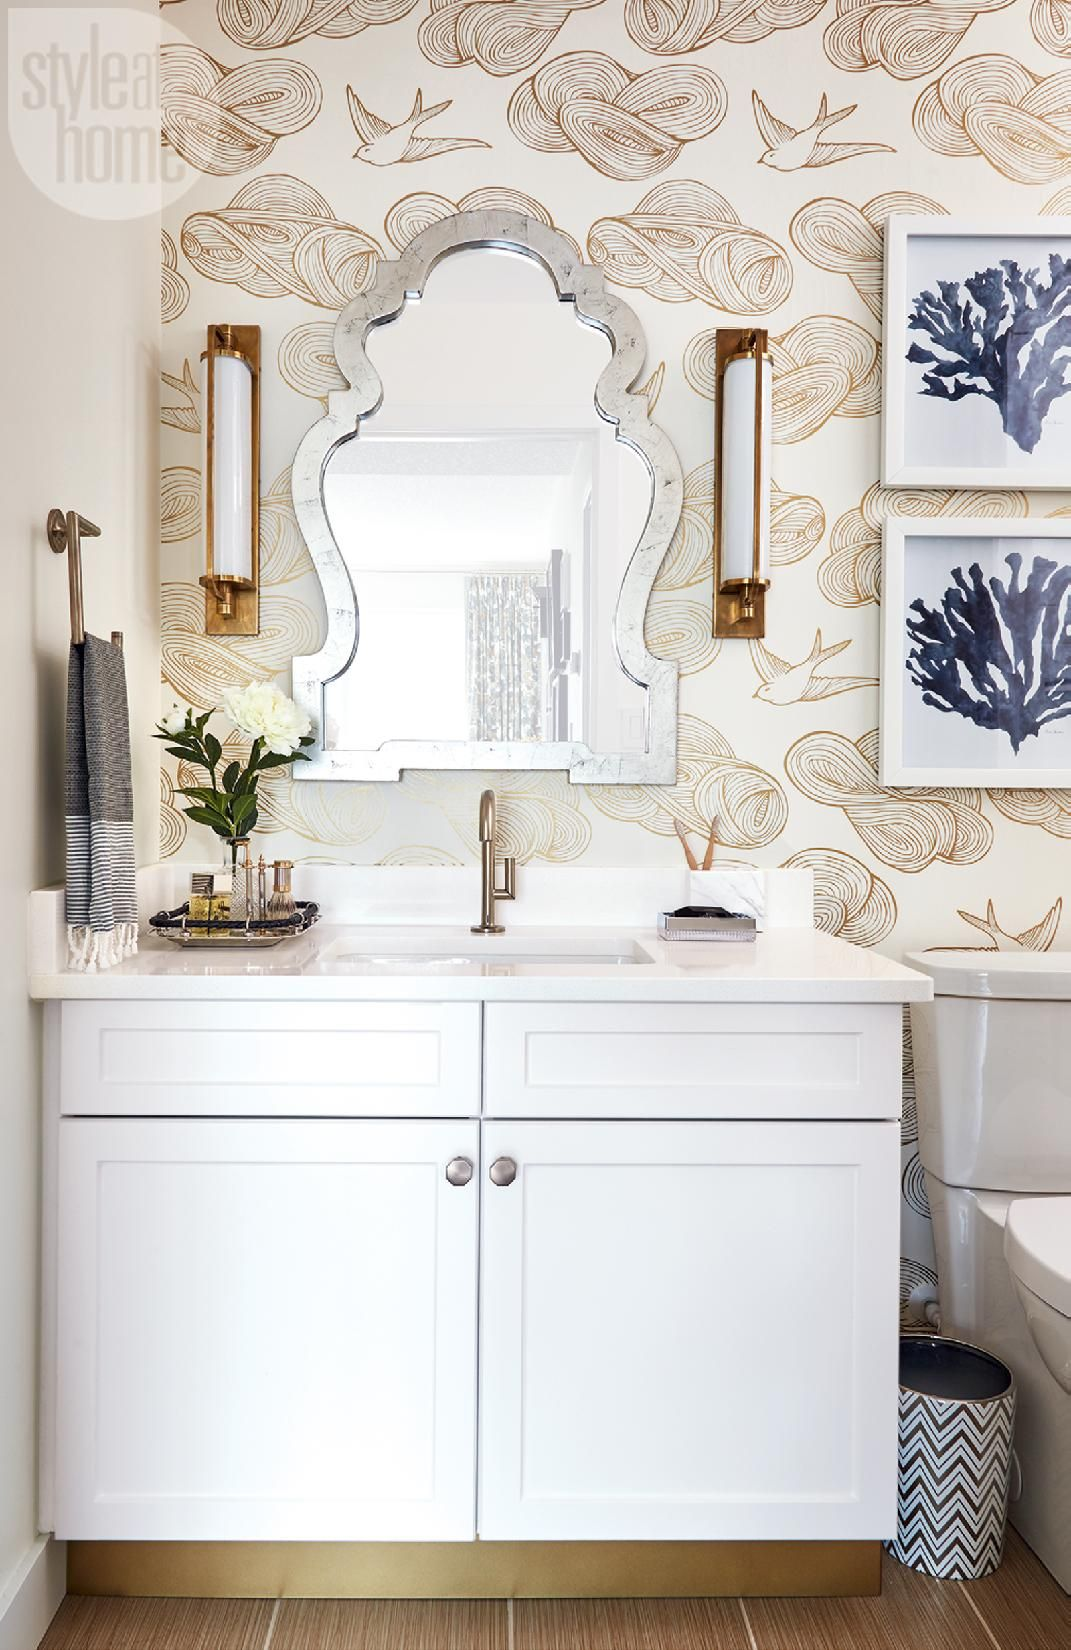 Condo tour: The perfect mix of rustic-meets-refined | bath ...